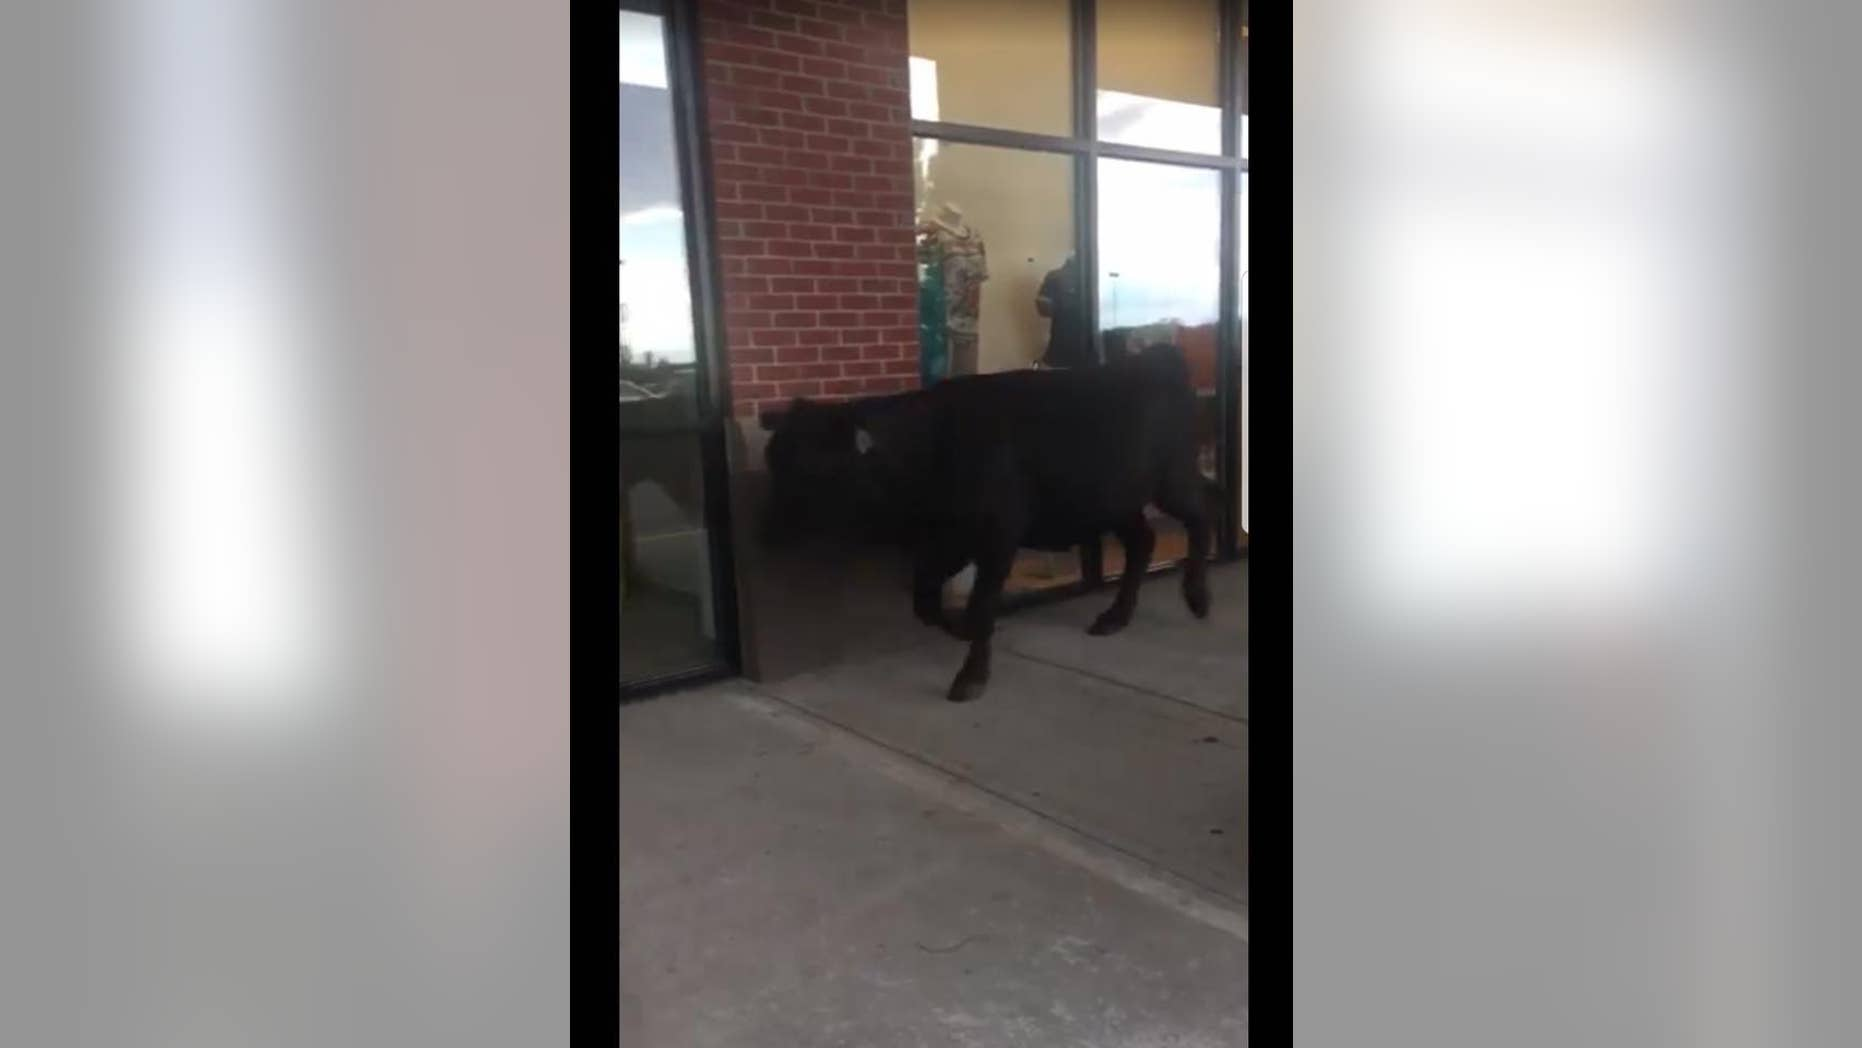 A shop at Merritt's Creek Shopping Plaza in Barboursville, West Virginia, with one of the loose cattle in front of it on Saturday, May 6, 2017.